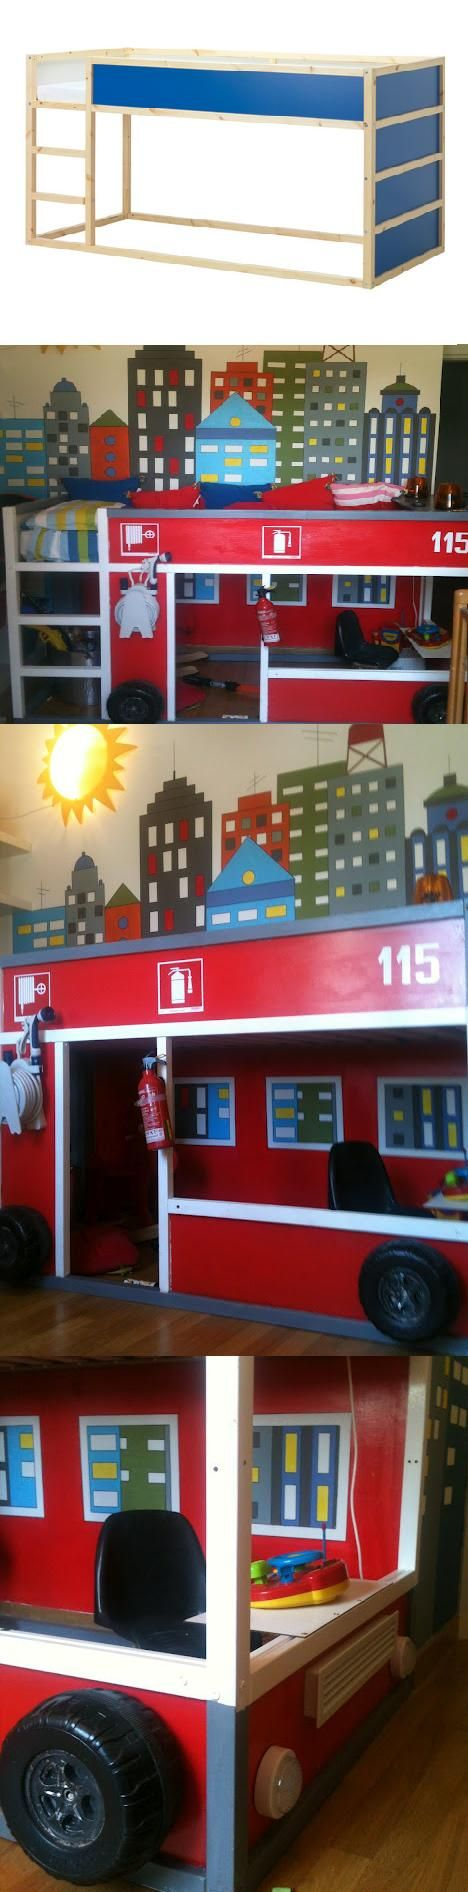 IKEA Child's Loft Bed Converted to Fire Engine Shared by